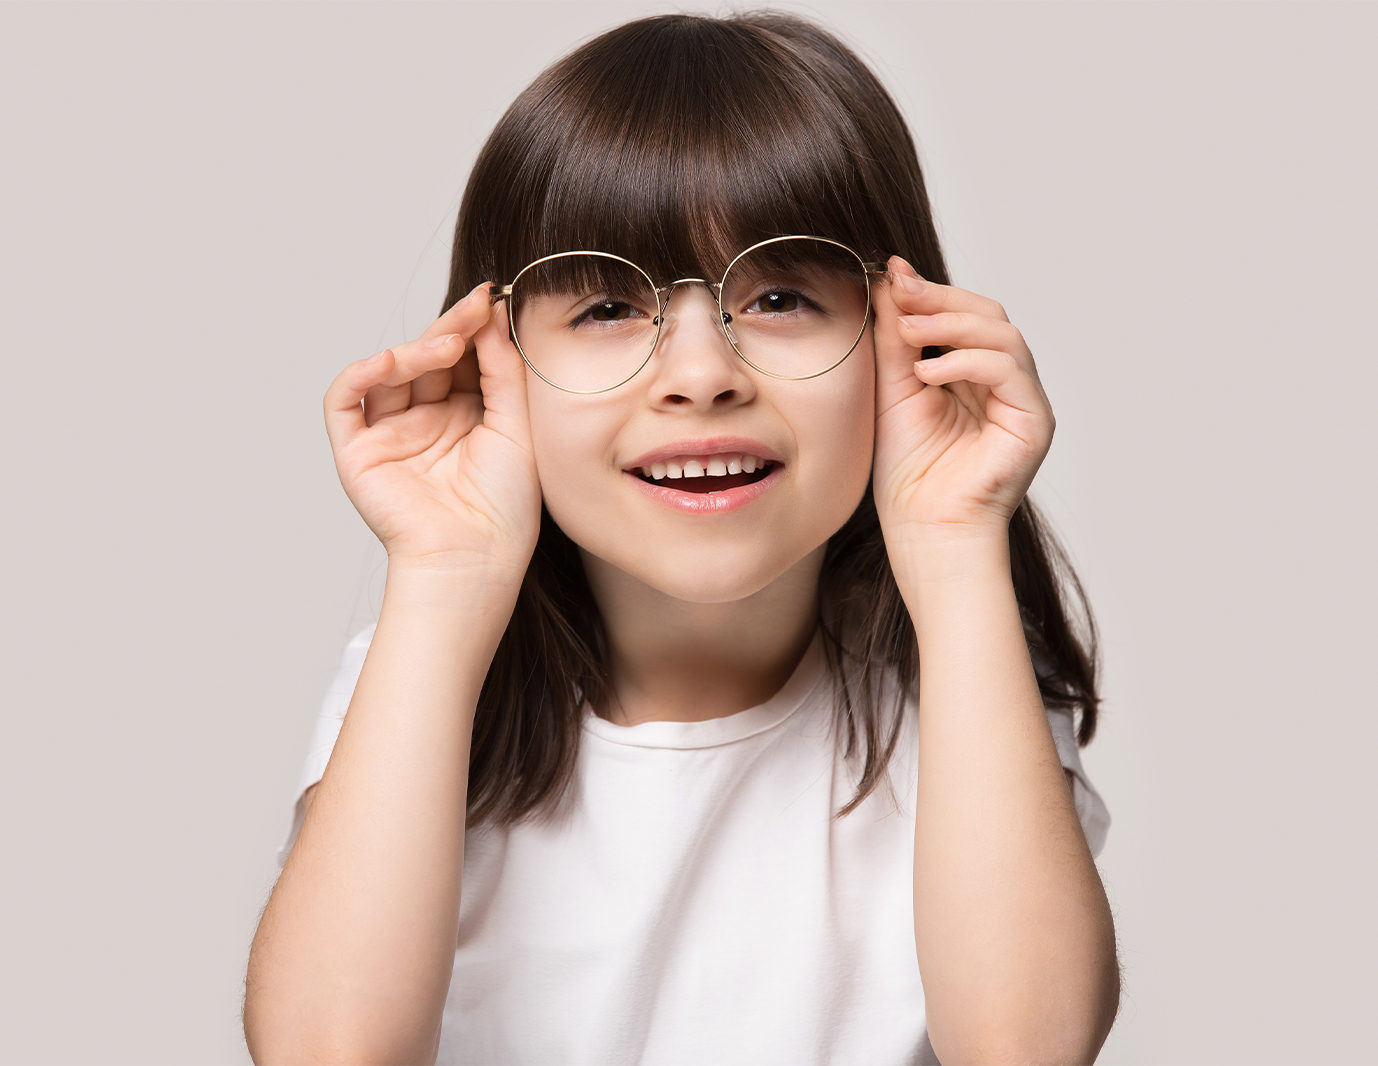 Young girl wearing a pair of glasses